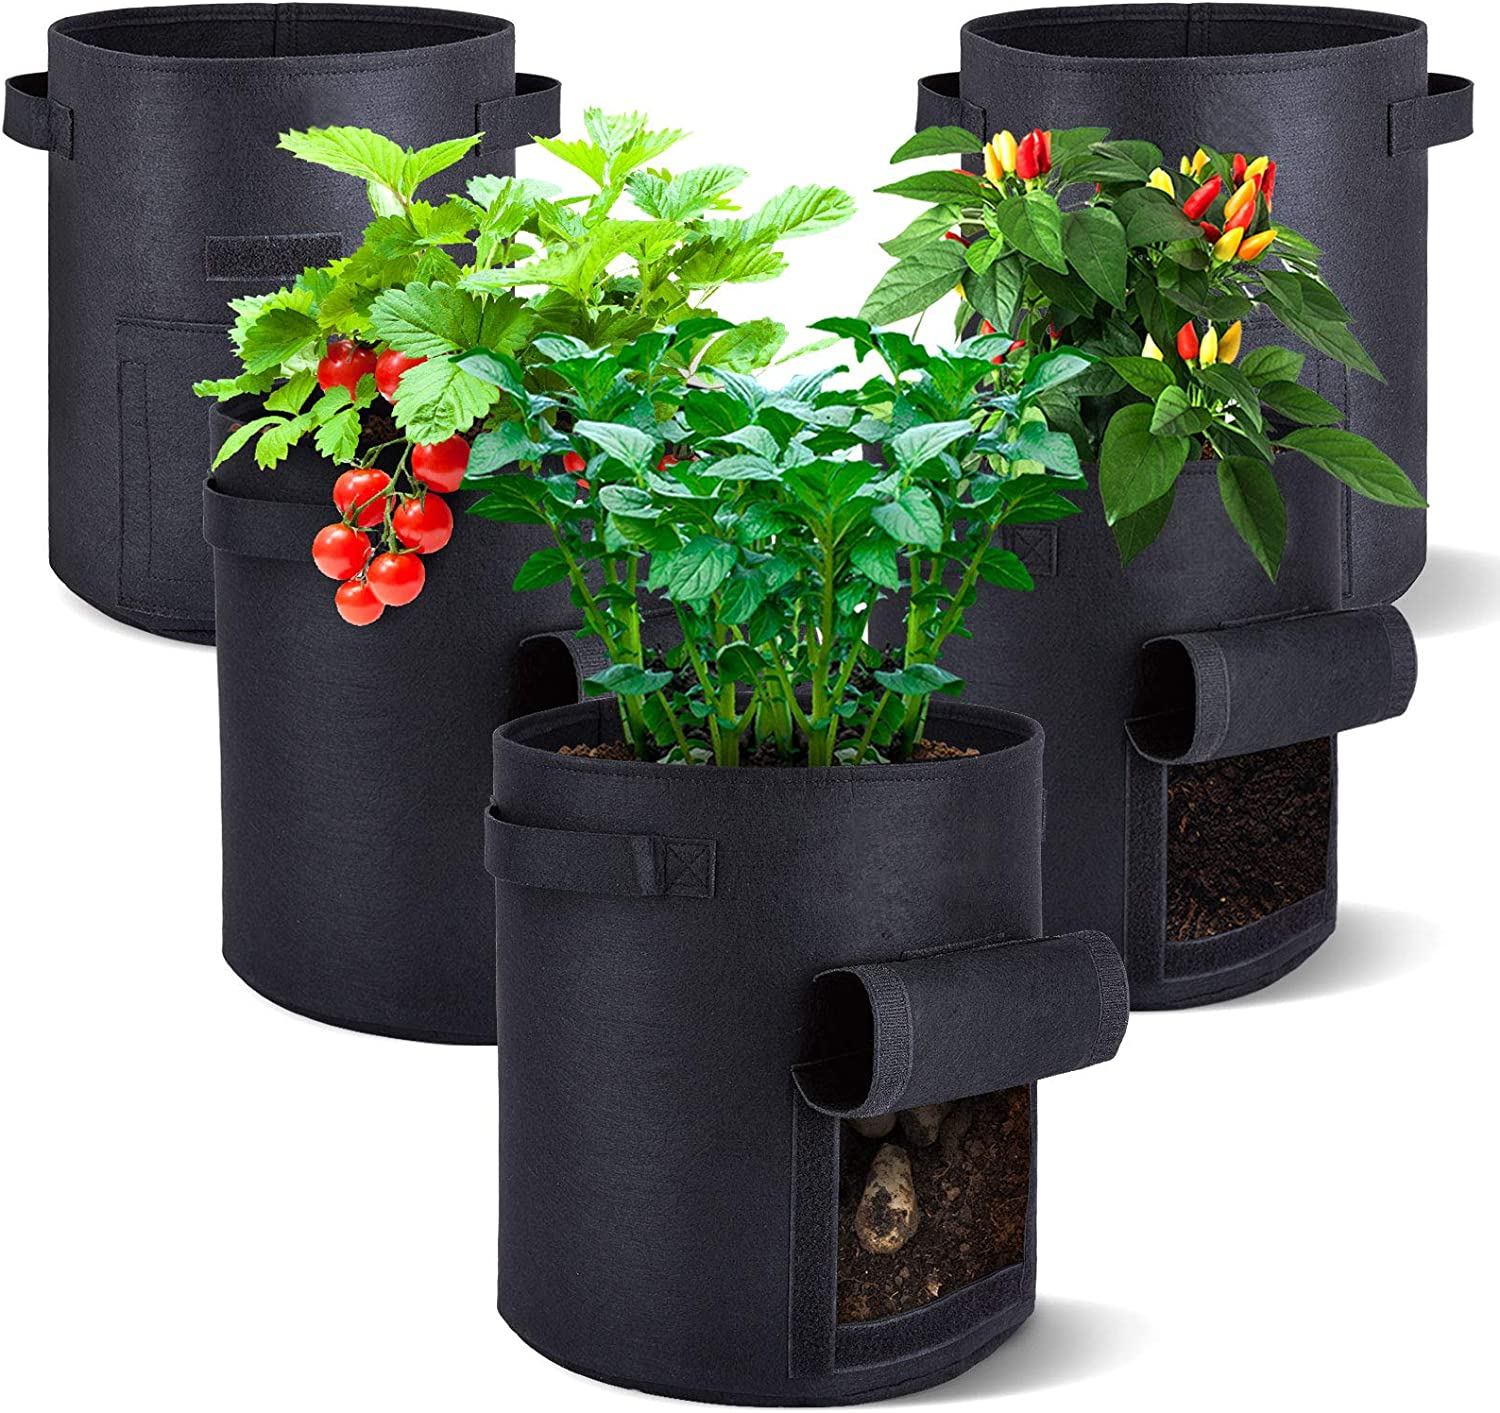 AIKEI 5-Pack Grow Popular Safety and trust shop is the lowest price challenge Bags 10 Gallon Double Premi Fabric Layers Pots